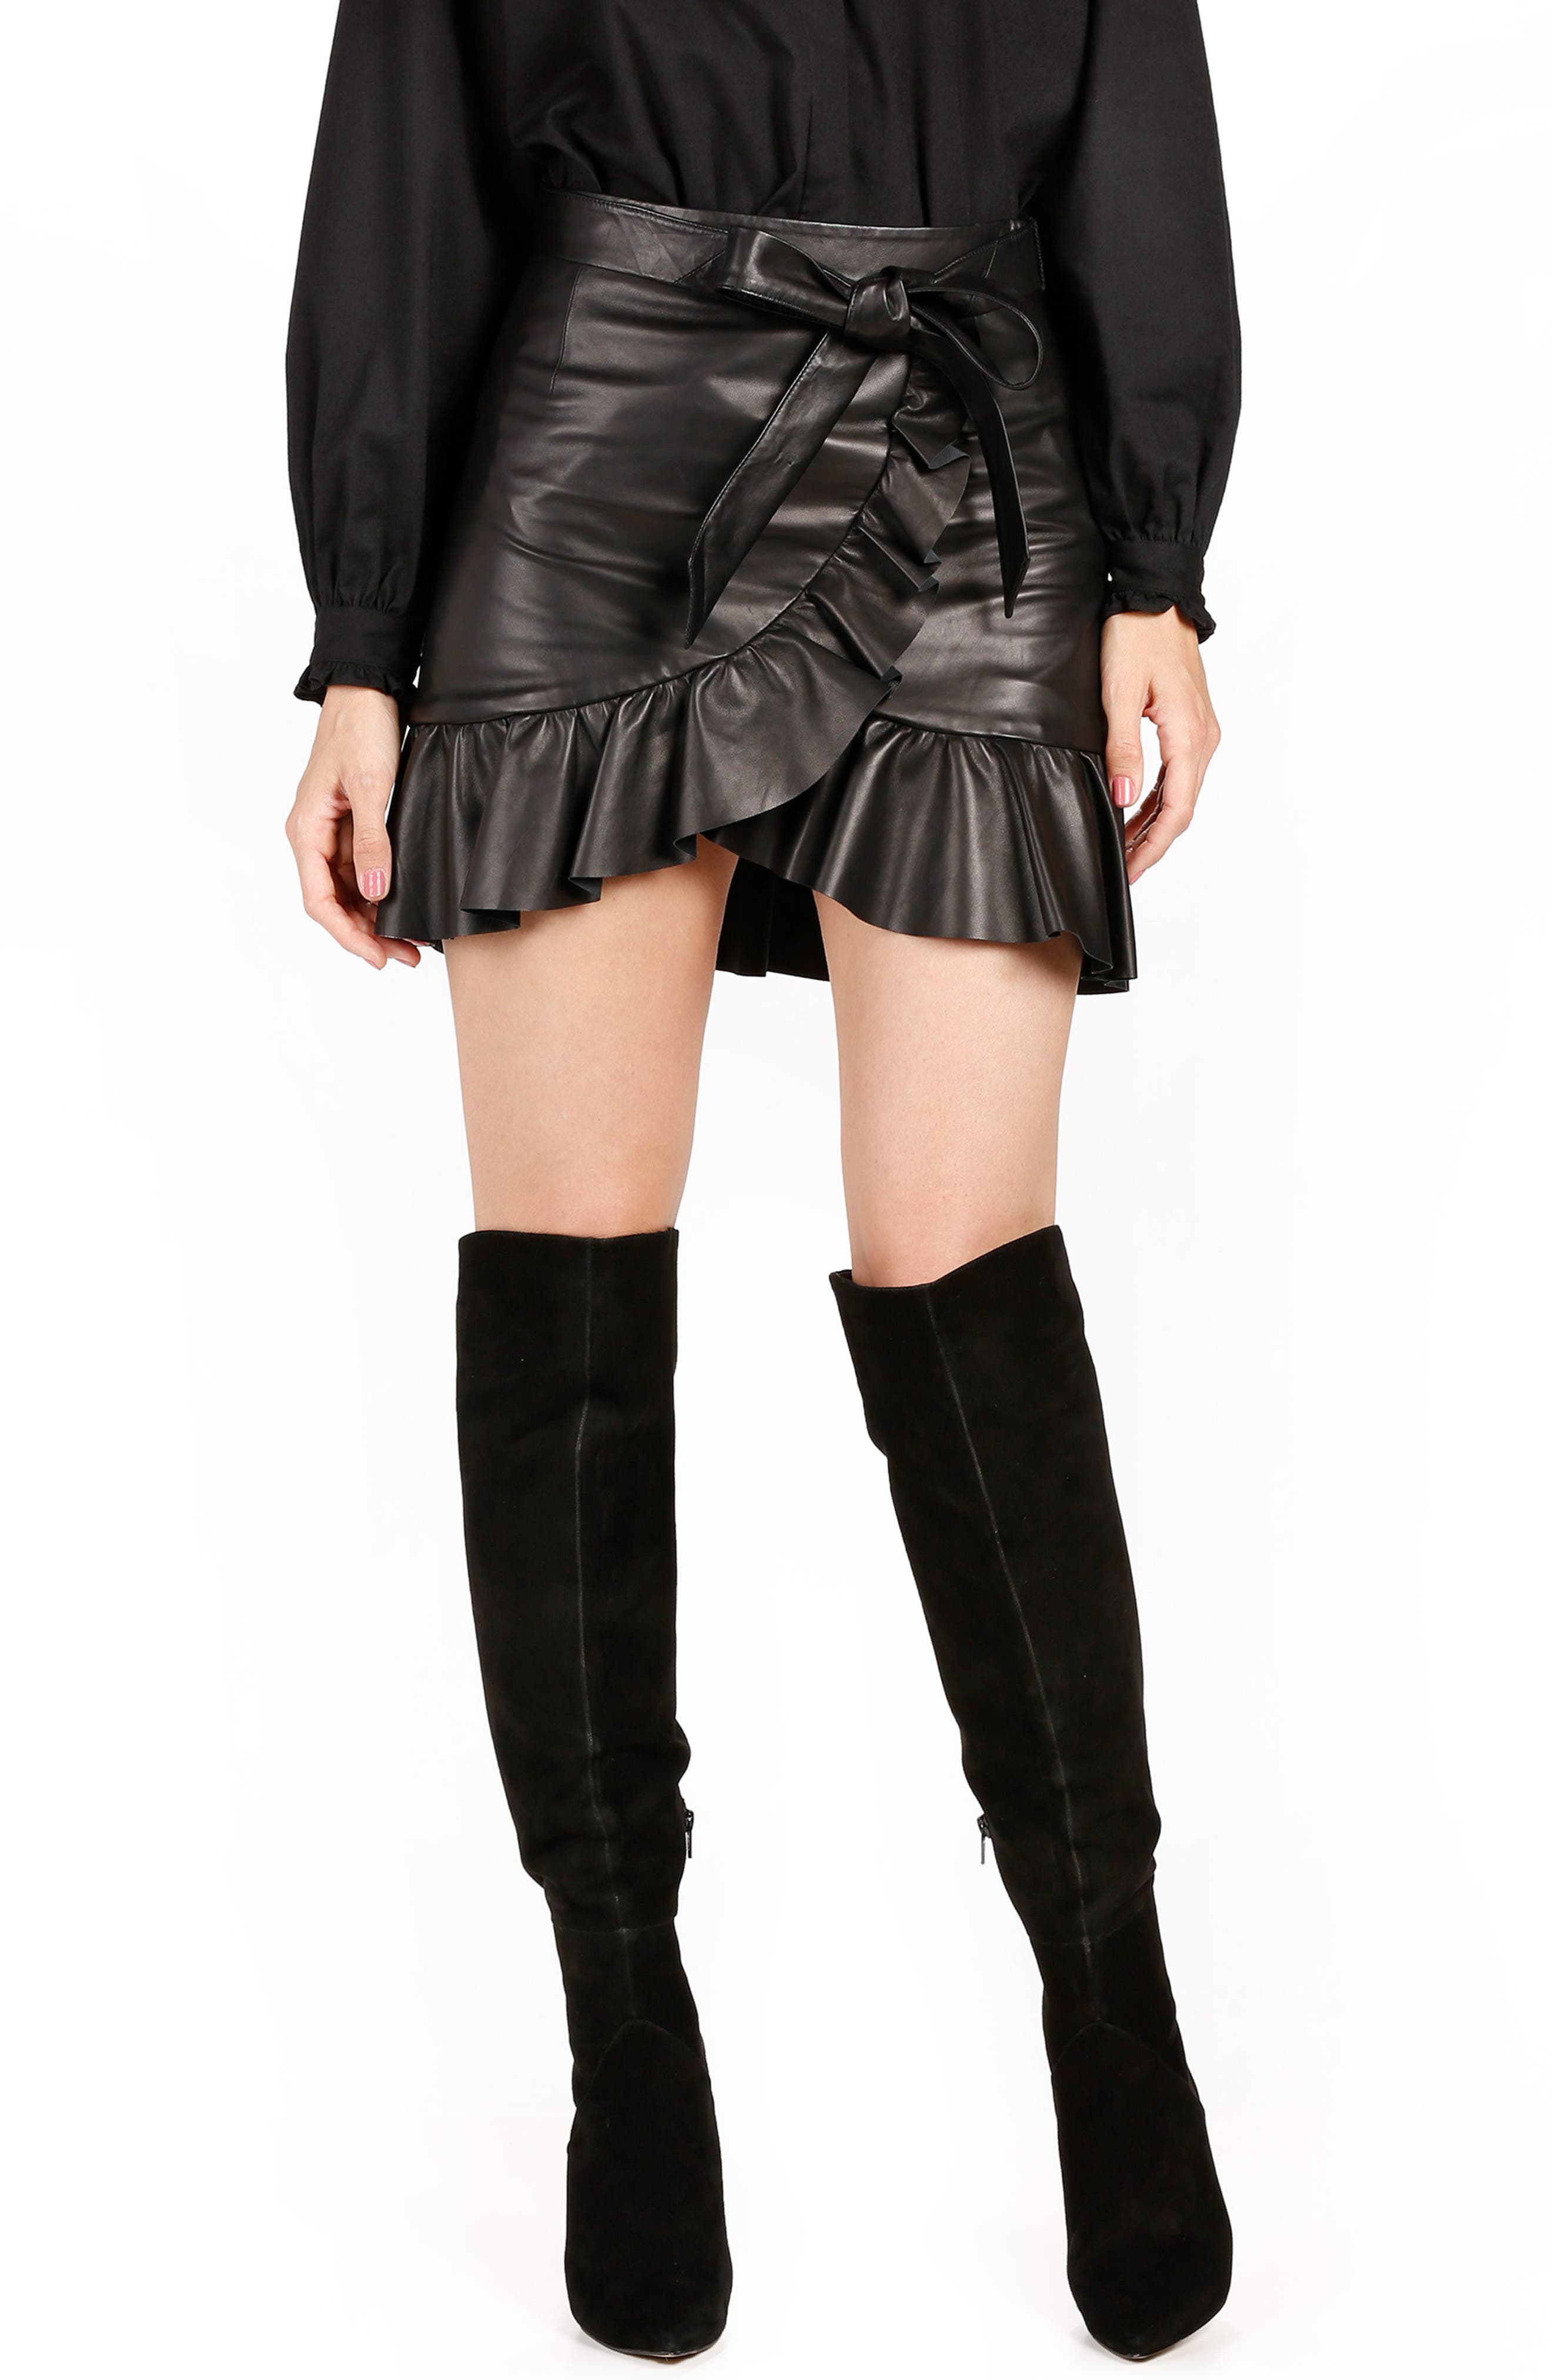 Nivelle Ruffle Leather Skirt,                         Main,                         color, 001